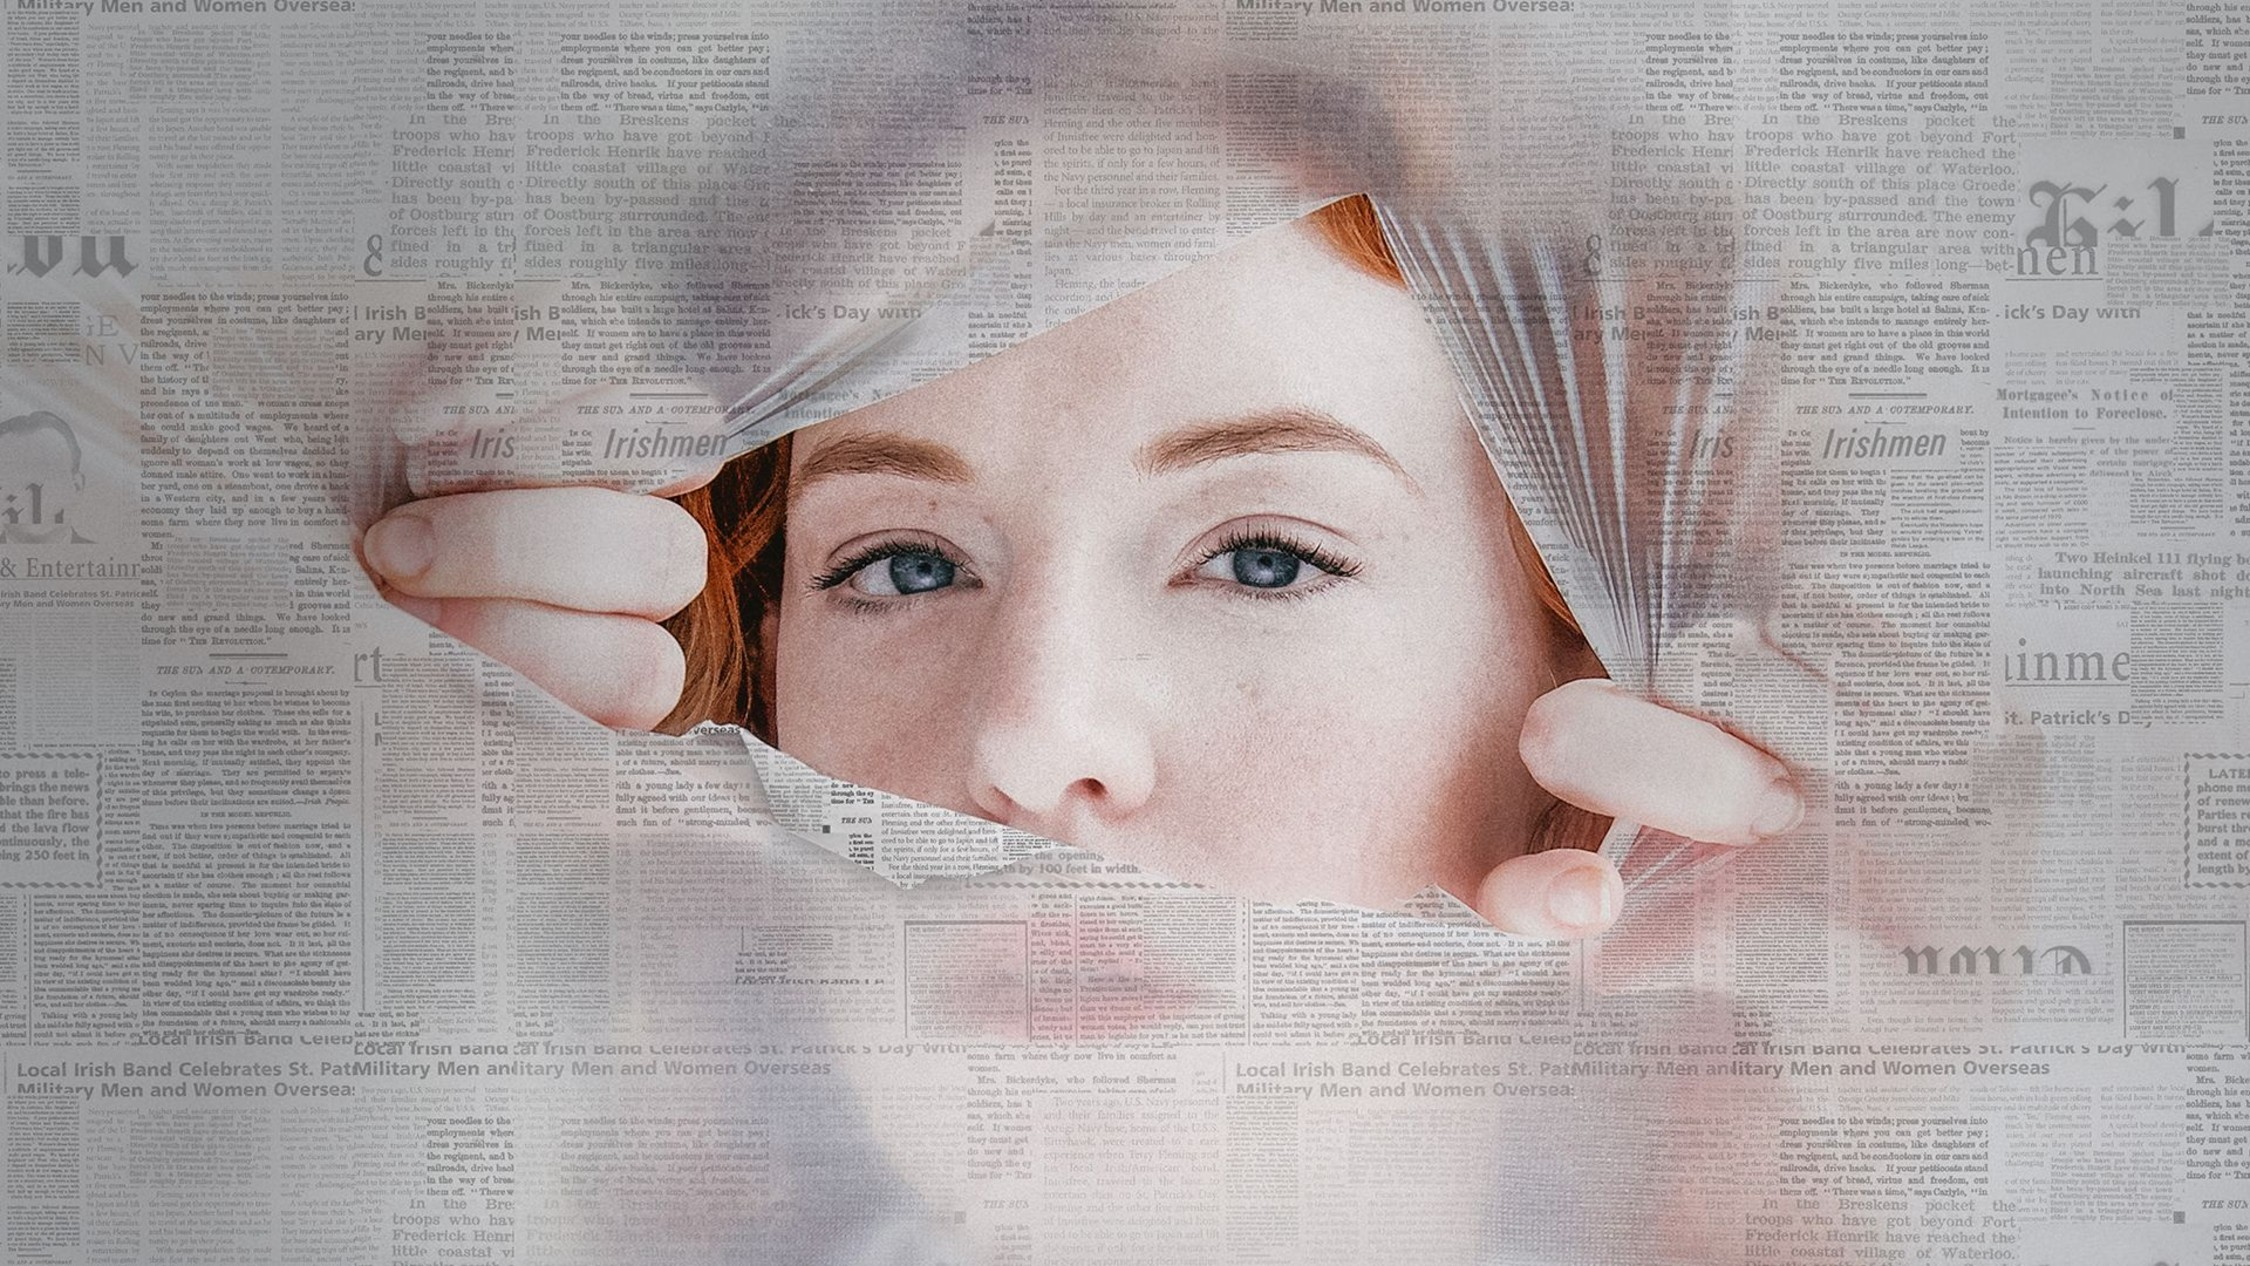 A red-headed woman peering through a torn hole in a newspaper